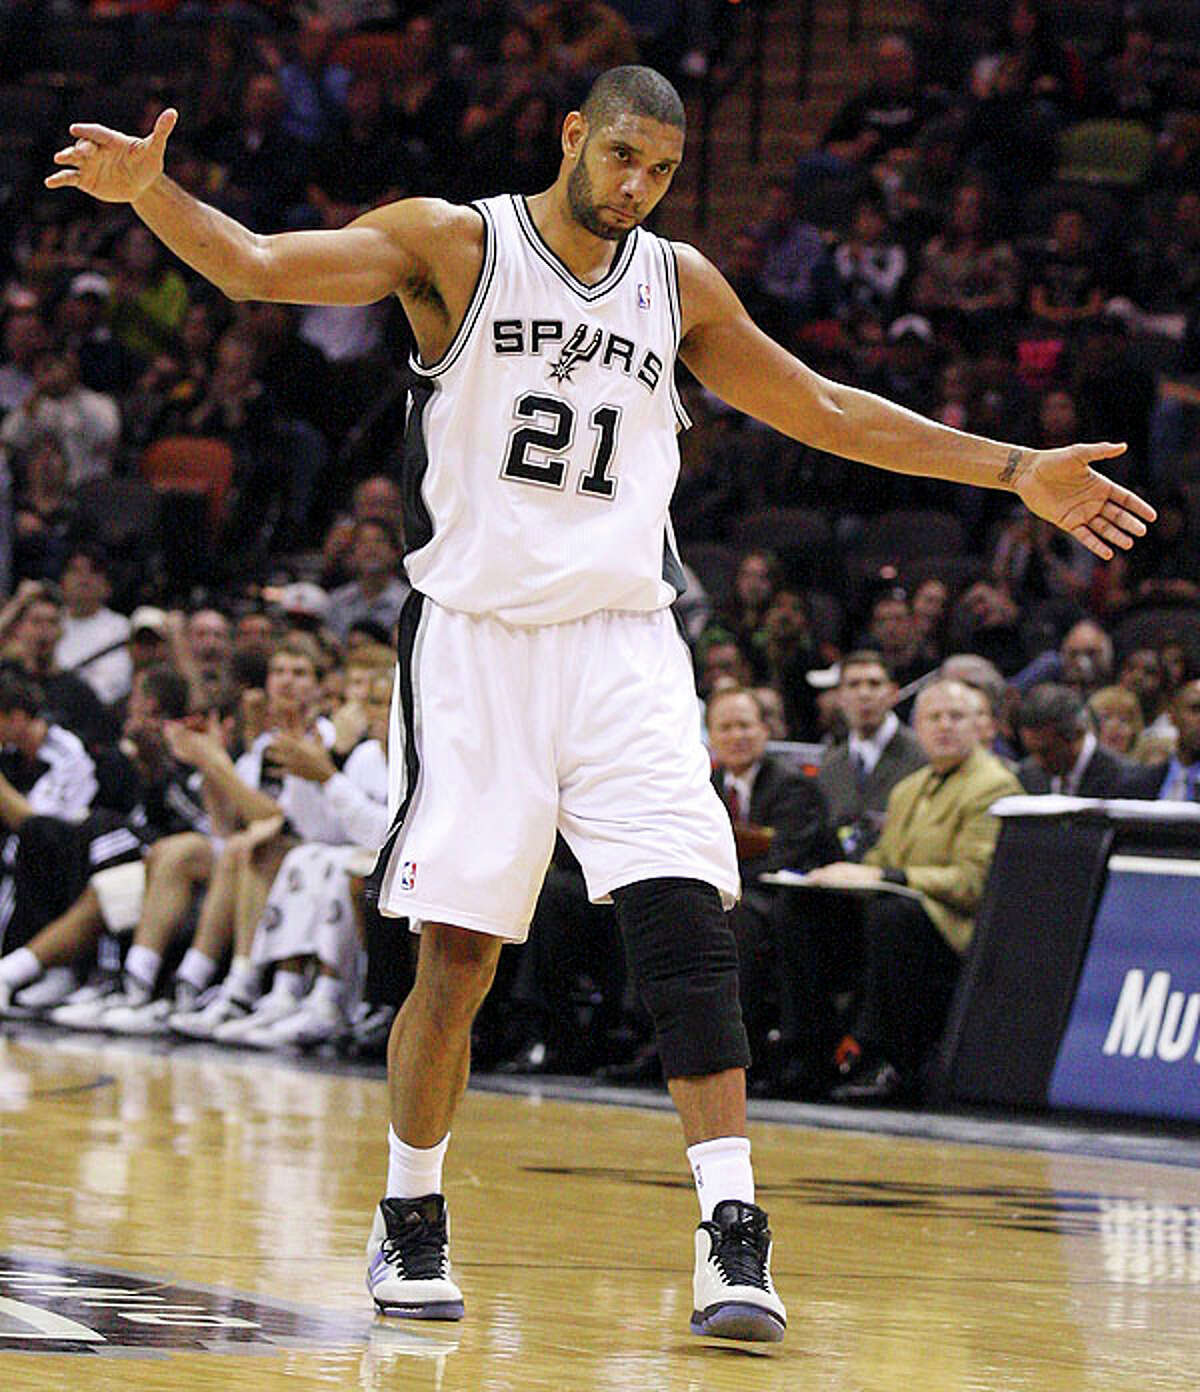 Spurs' Tim Duncan  reacts after scoring against the Thunder during second half action Saturday.